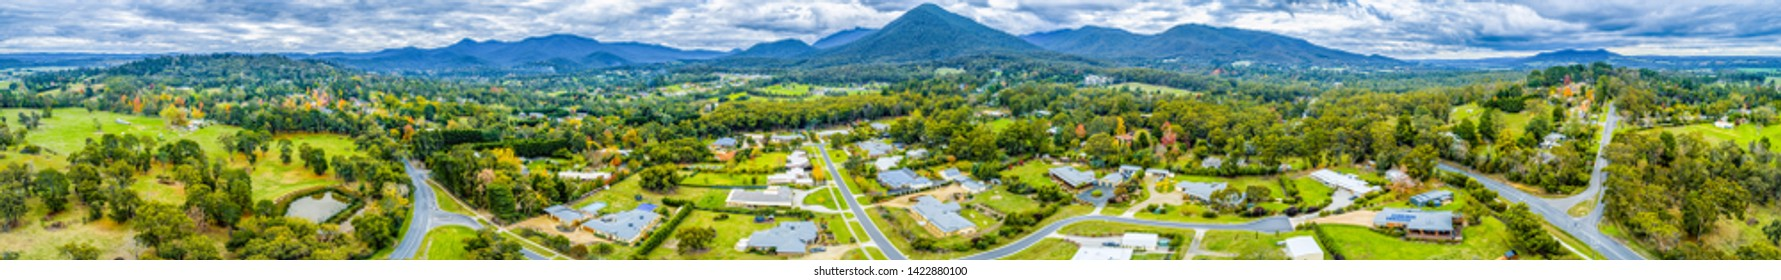 Wide aerial panorama of scenic countryside with houses surrounded by forest and mountains. Healesville, Victoria, Australia - Shutterstock ID 1422880100